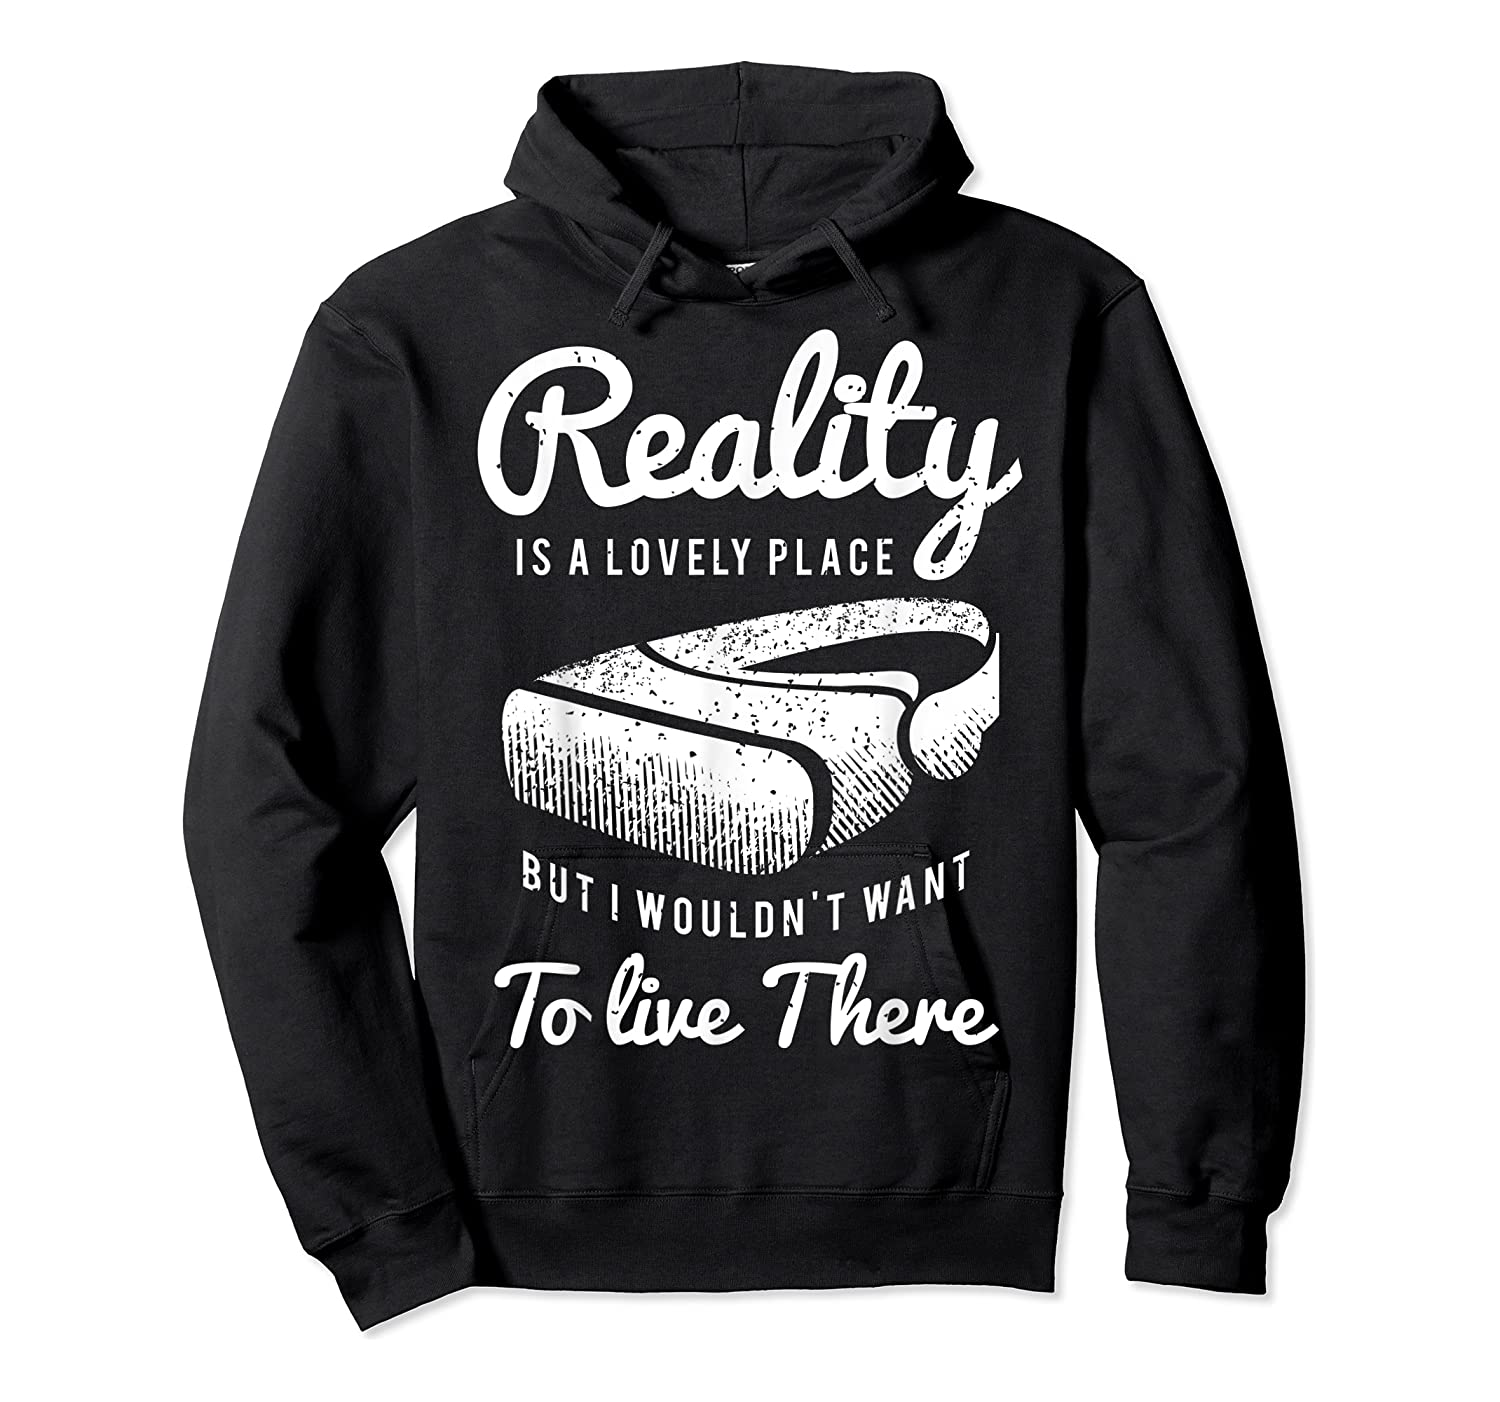 Virtual Reality Hmd Interactive Game Vr Headset Shirts Unisex Pullover Hoodie